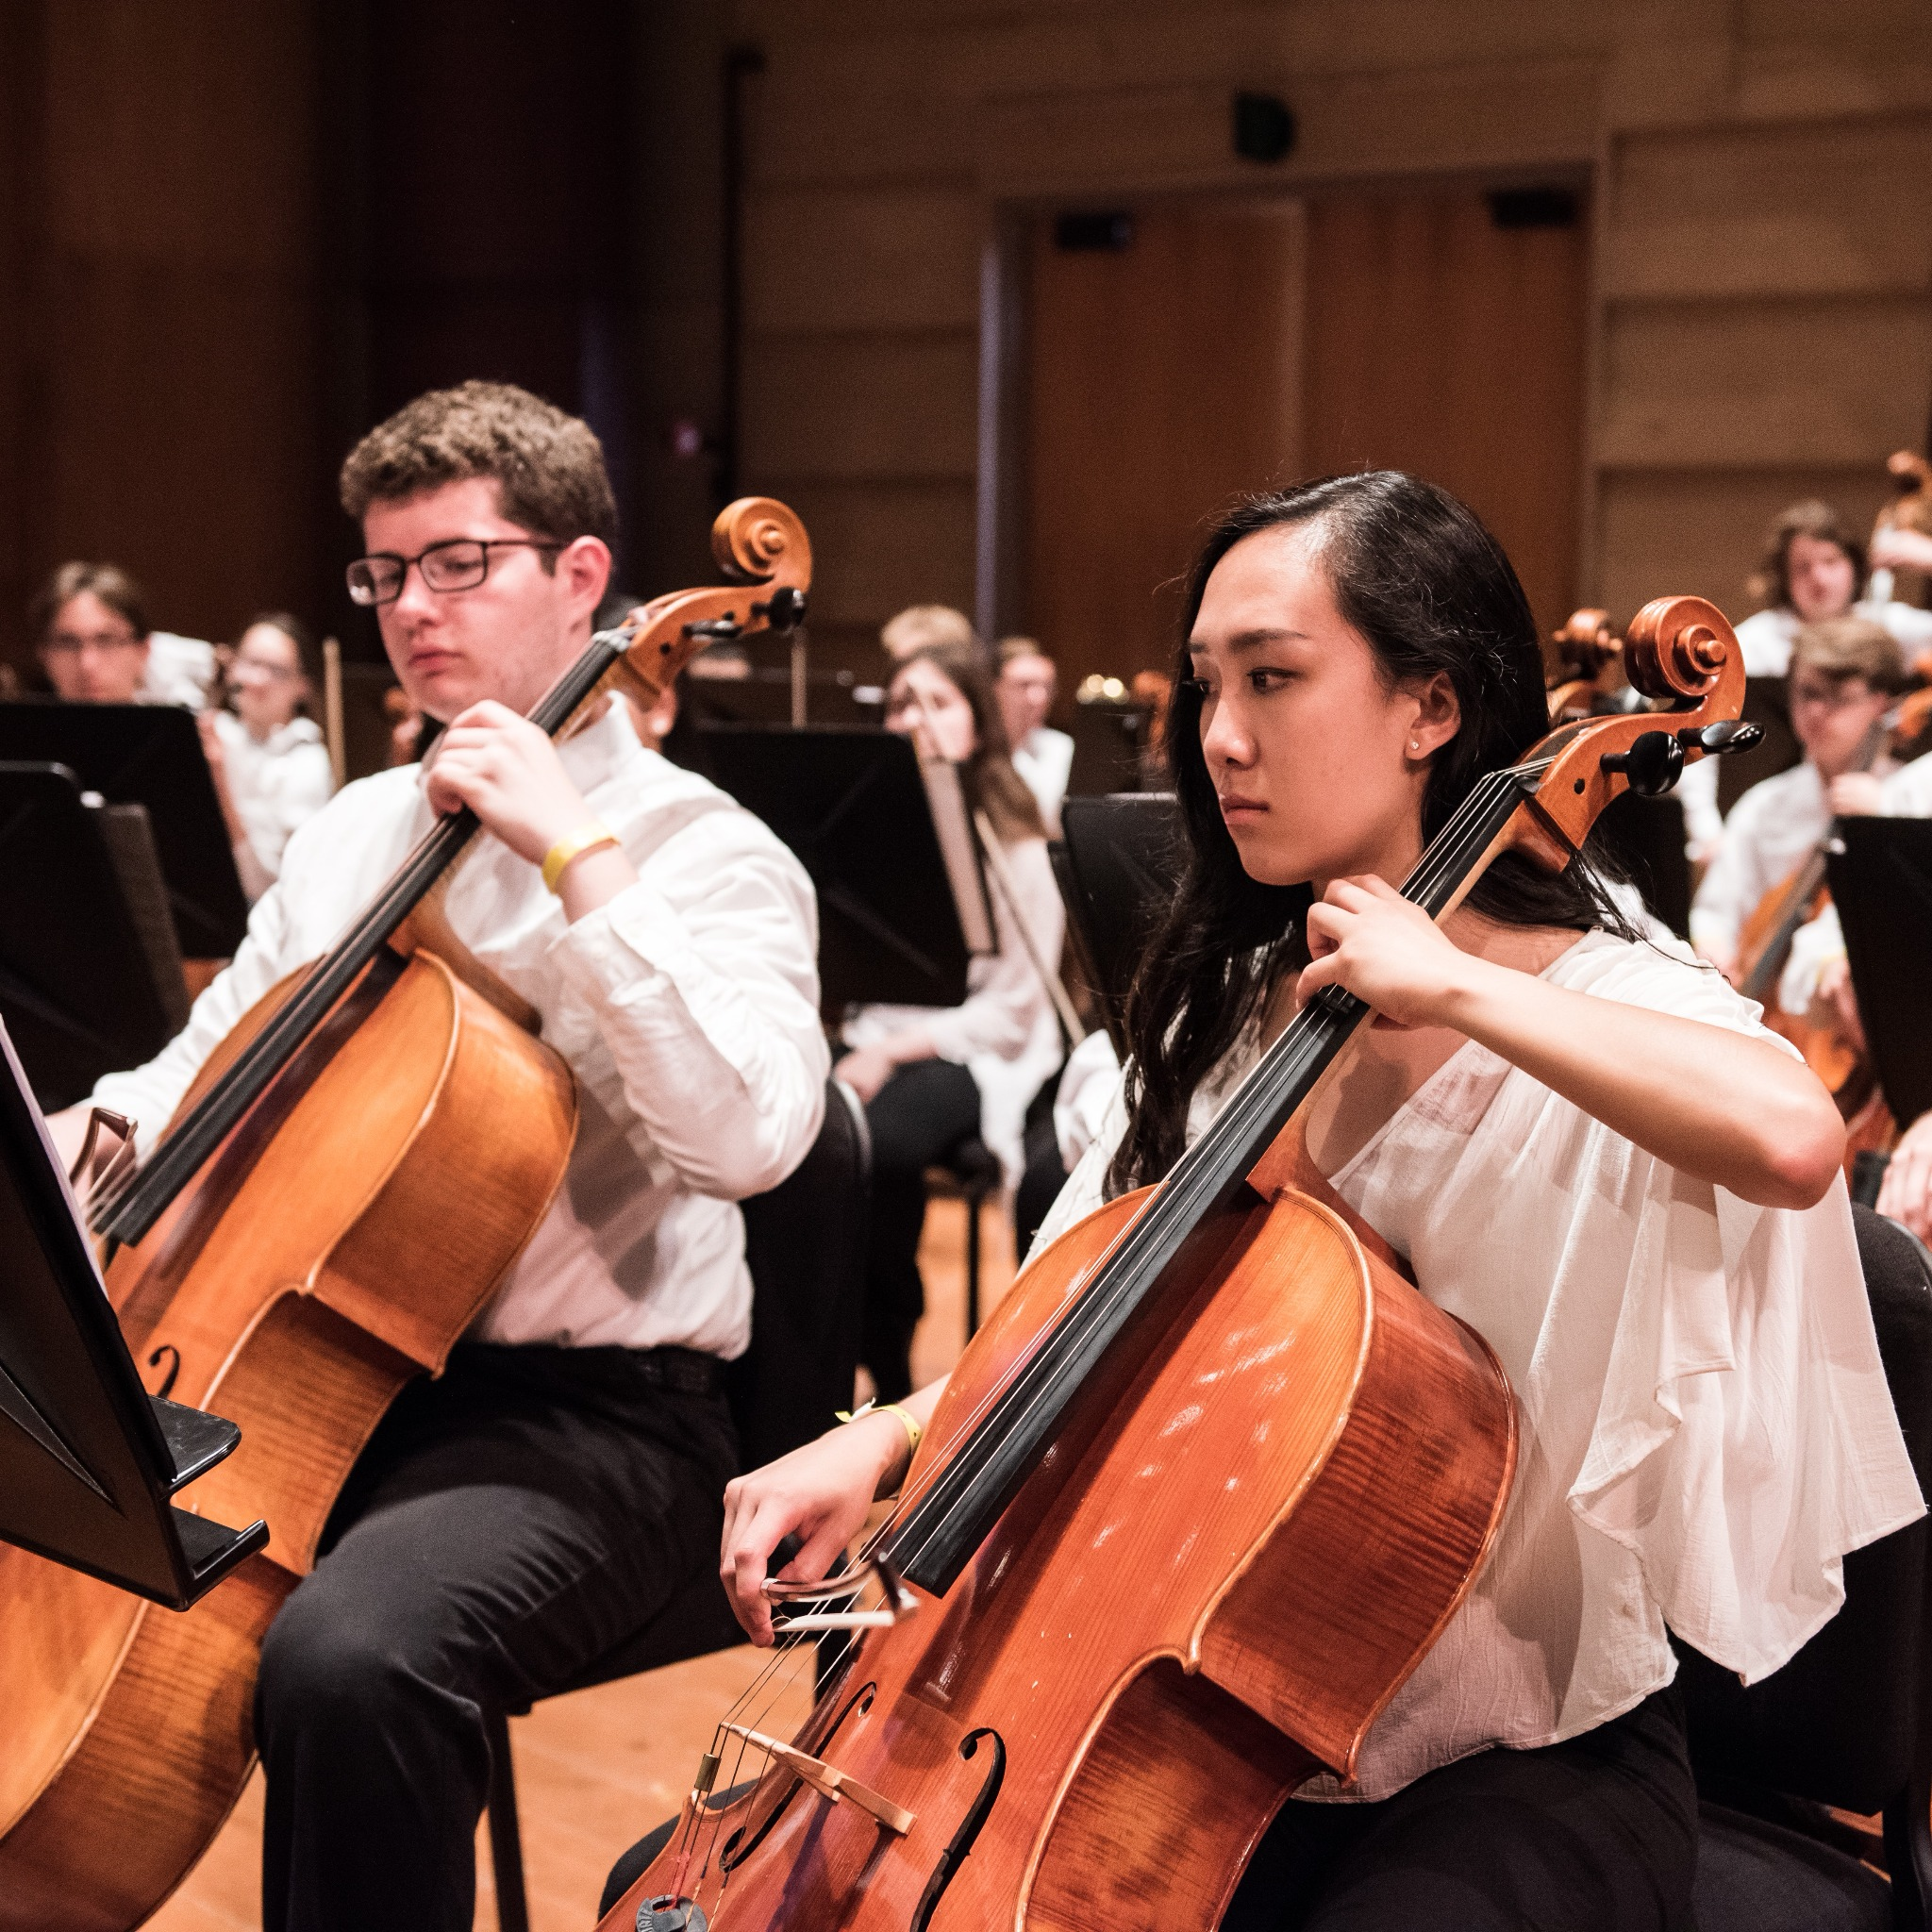 OSAI 2018 Institute Orchestra Performances – Audio